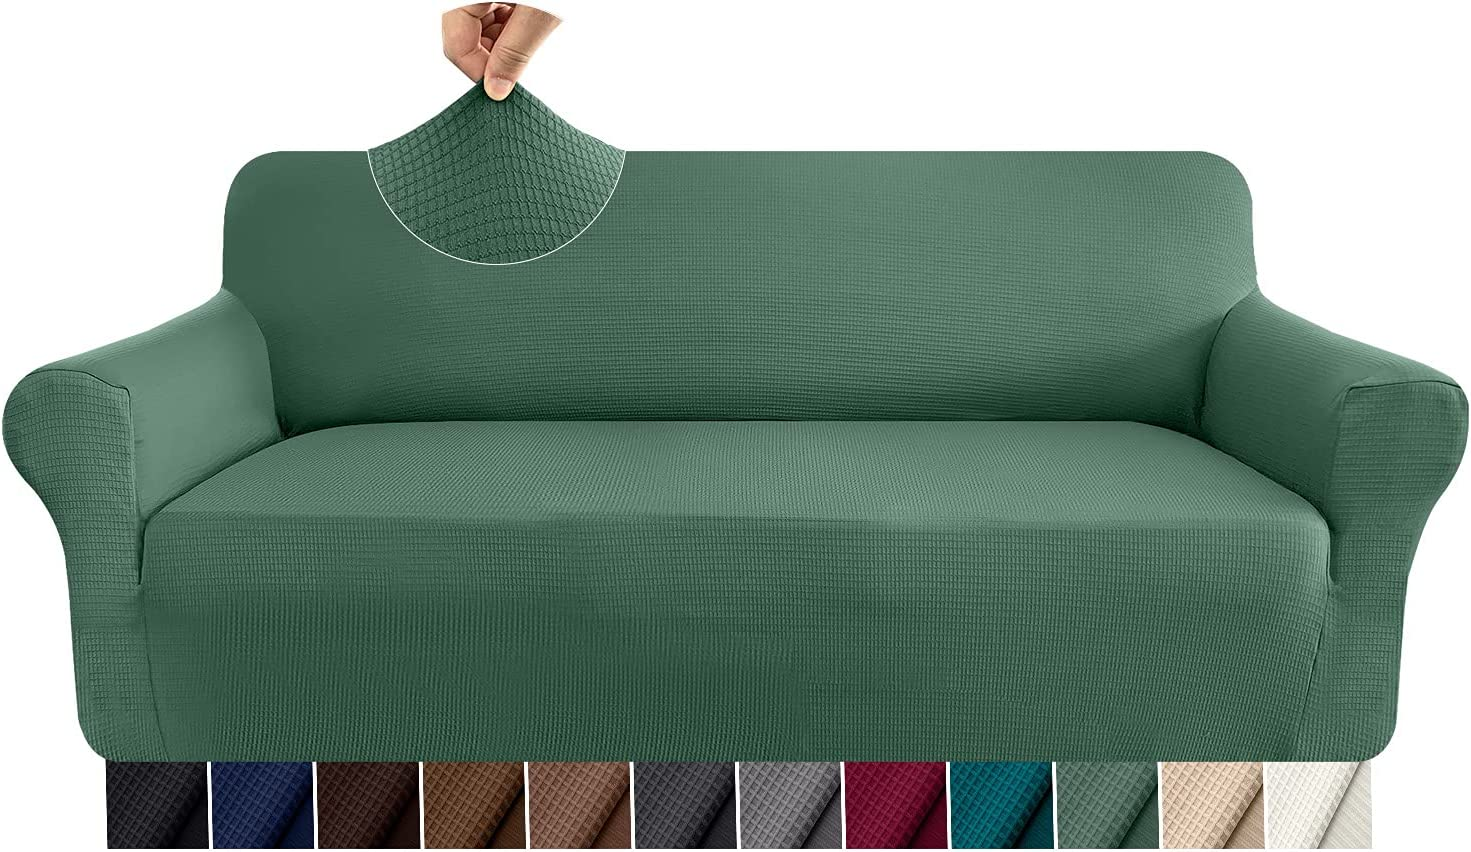 Granbest Thick High order Couch Cover 1 Piece 3 Stretch for Sofa Finally popular brand Fit